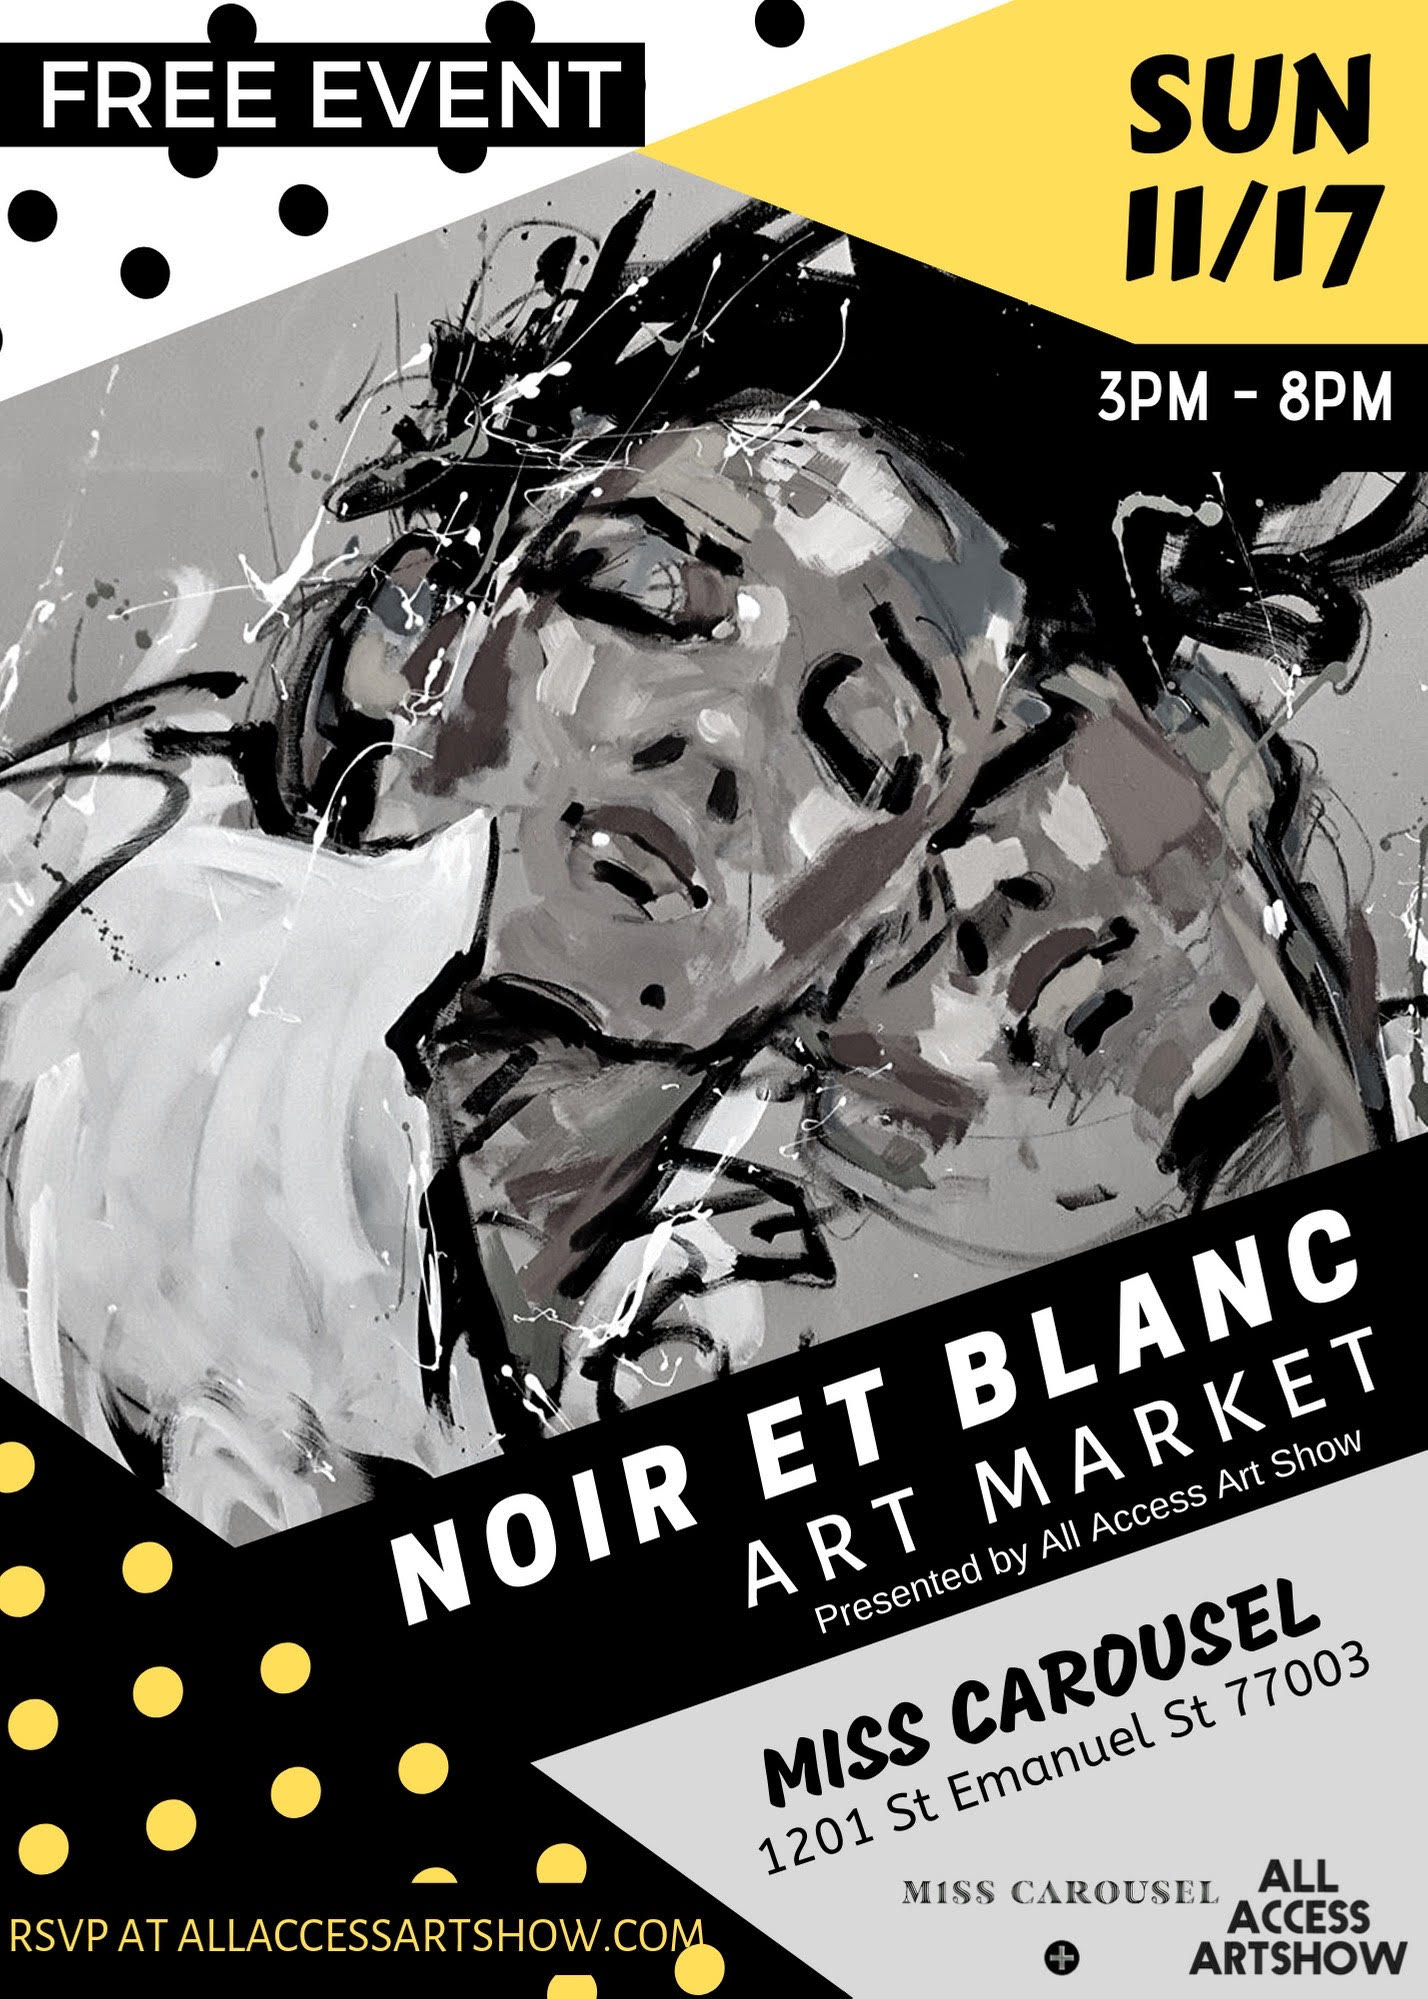 Photo Design Noir Et Blanc Noir Et Blanc Art Market Presented By All Access Art Show